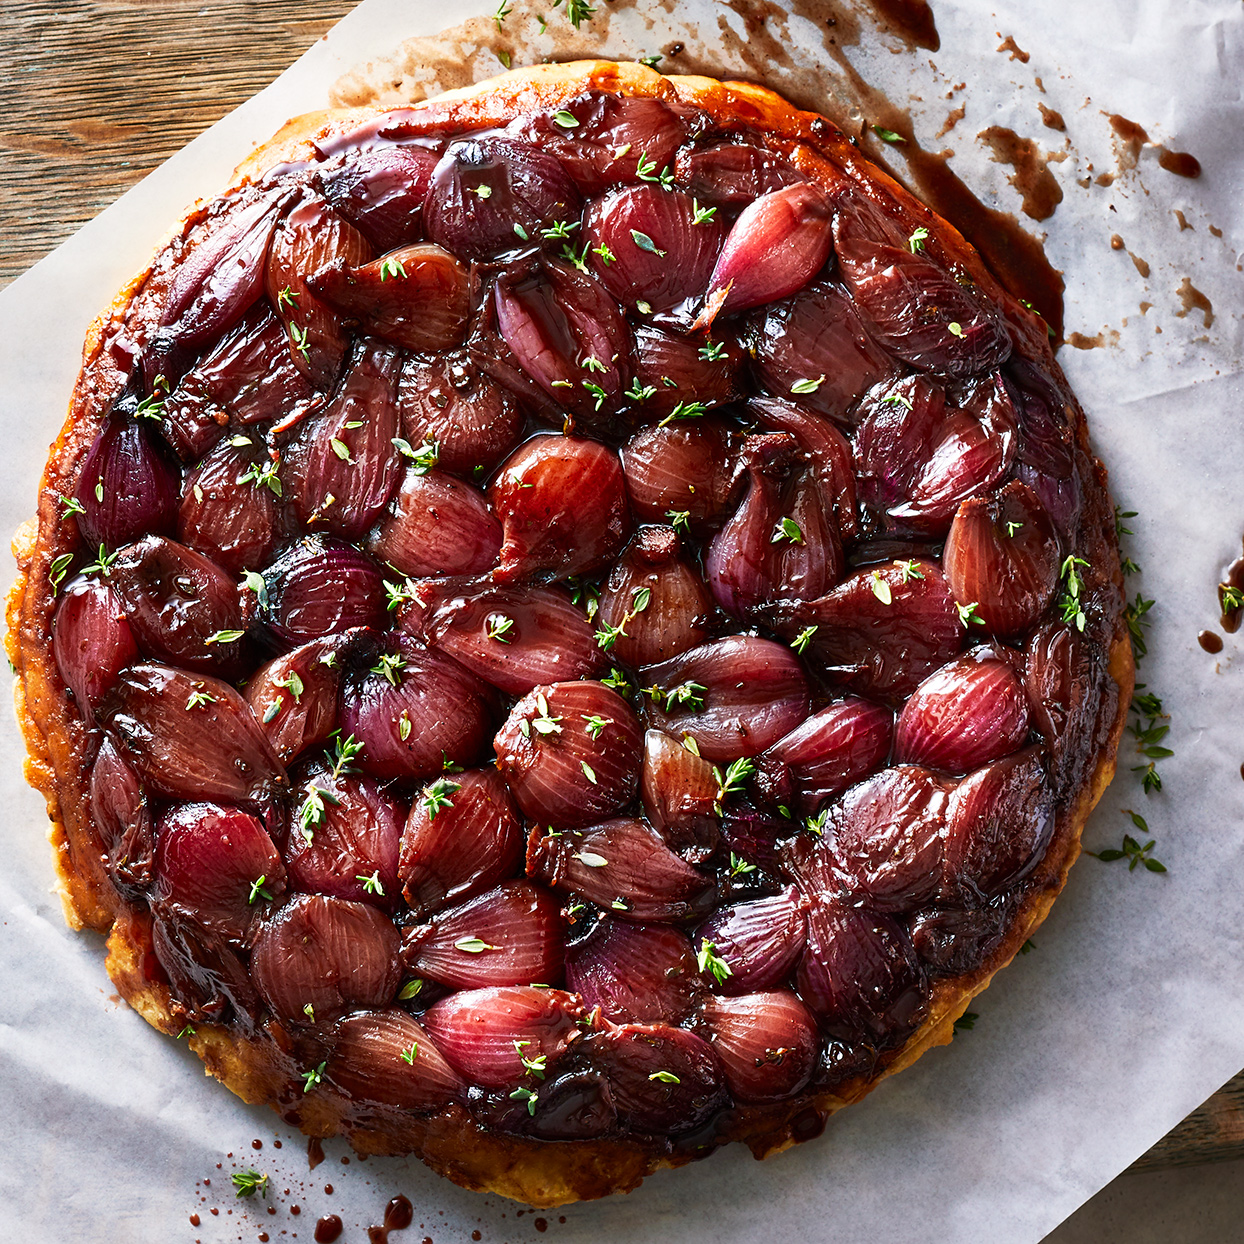 This tarte tatin hits that irresistible sweet-and-sour combo: sweet comes from roasty onions, balsamic and a touch of sugar; vinegar lends sour notes. The series of reductions intensify the flavors and create what is basically a pan sauce. Serve a slice of this tarte tatin with a salad for a light meal or alongside your favorite cut of beef for a heartier dinner.